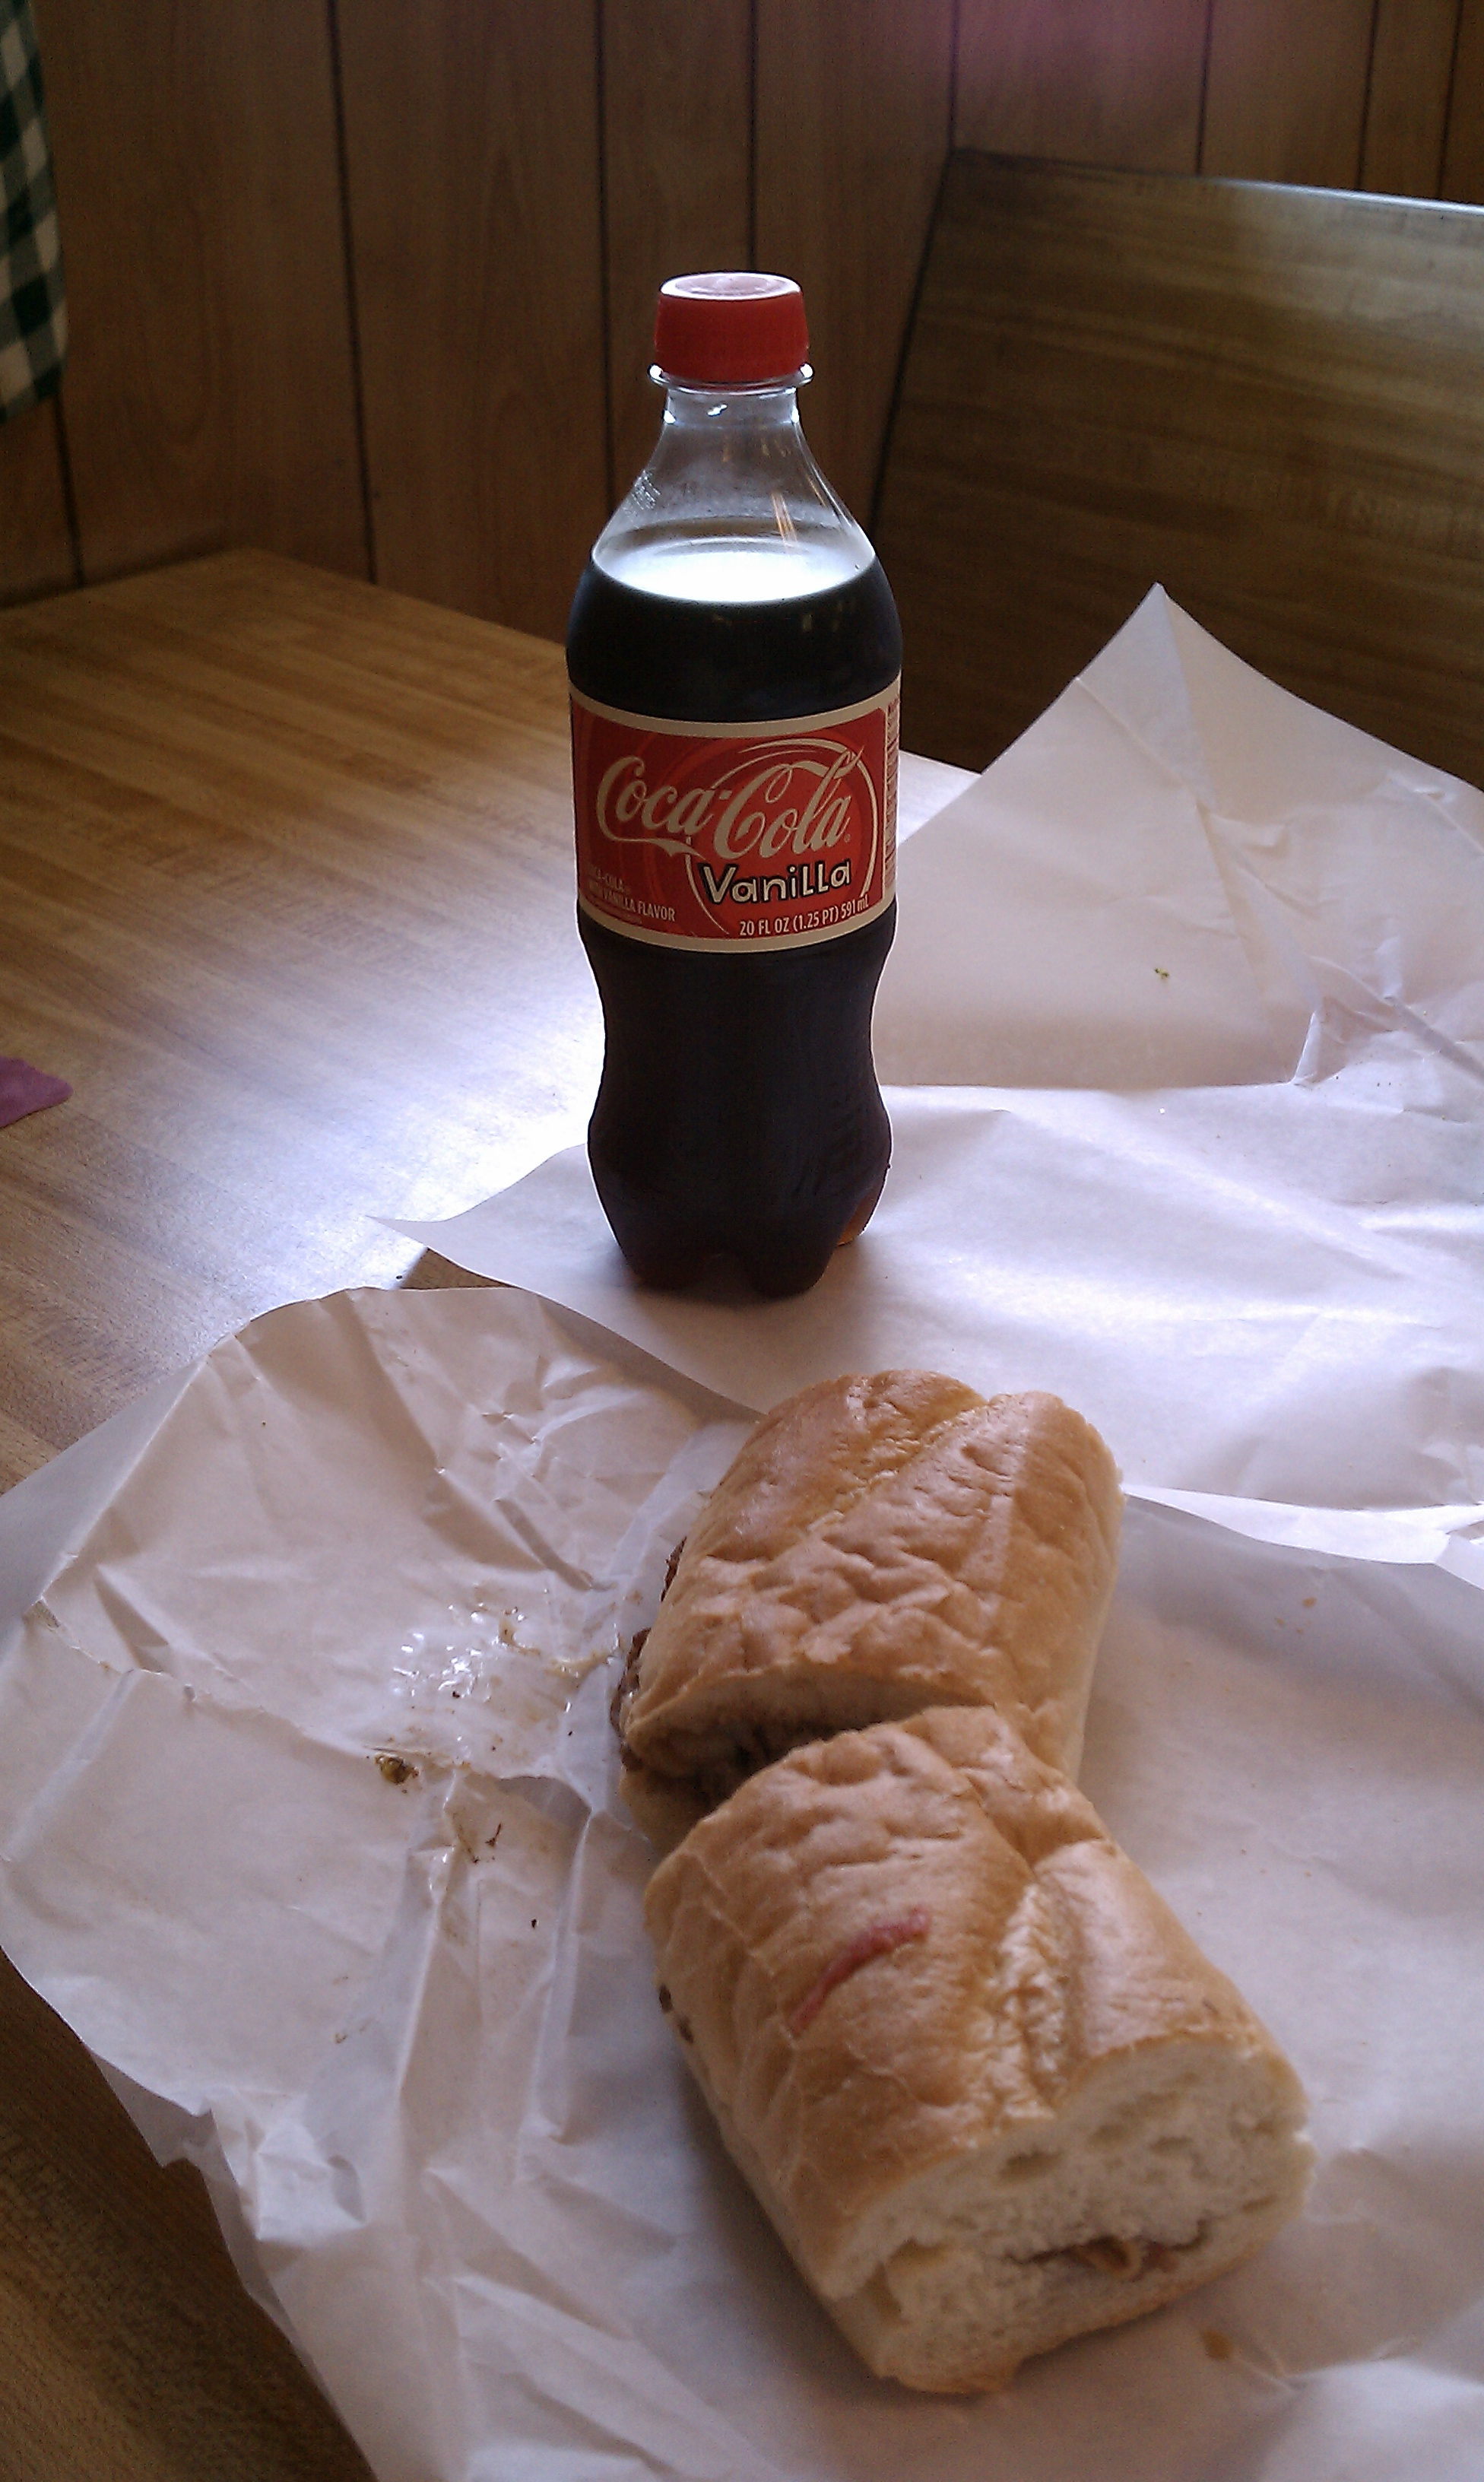 riccotti's of Johnston RI :: small steak and cheese with onions and vanilla coke. been a long time since ive had a vanilla coke!